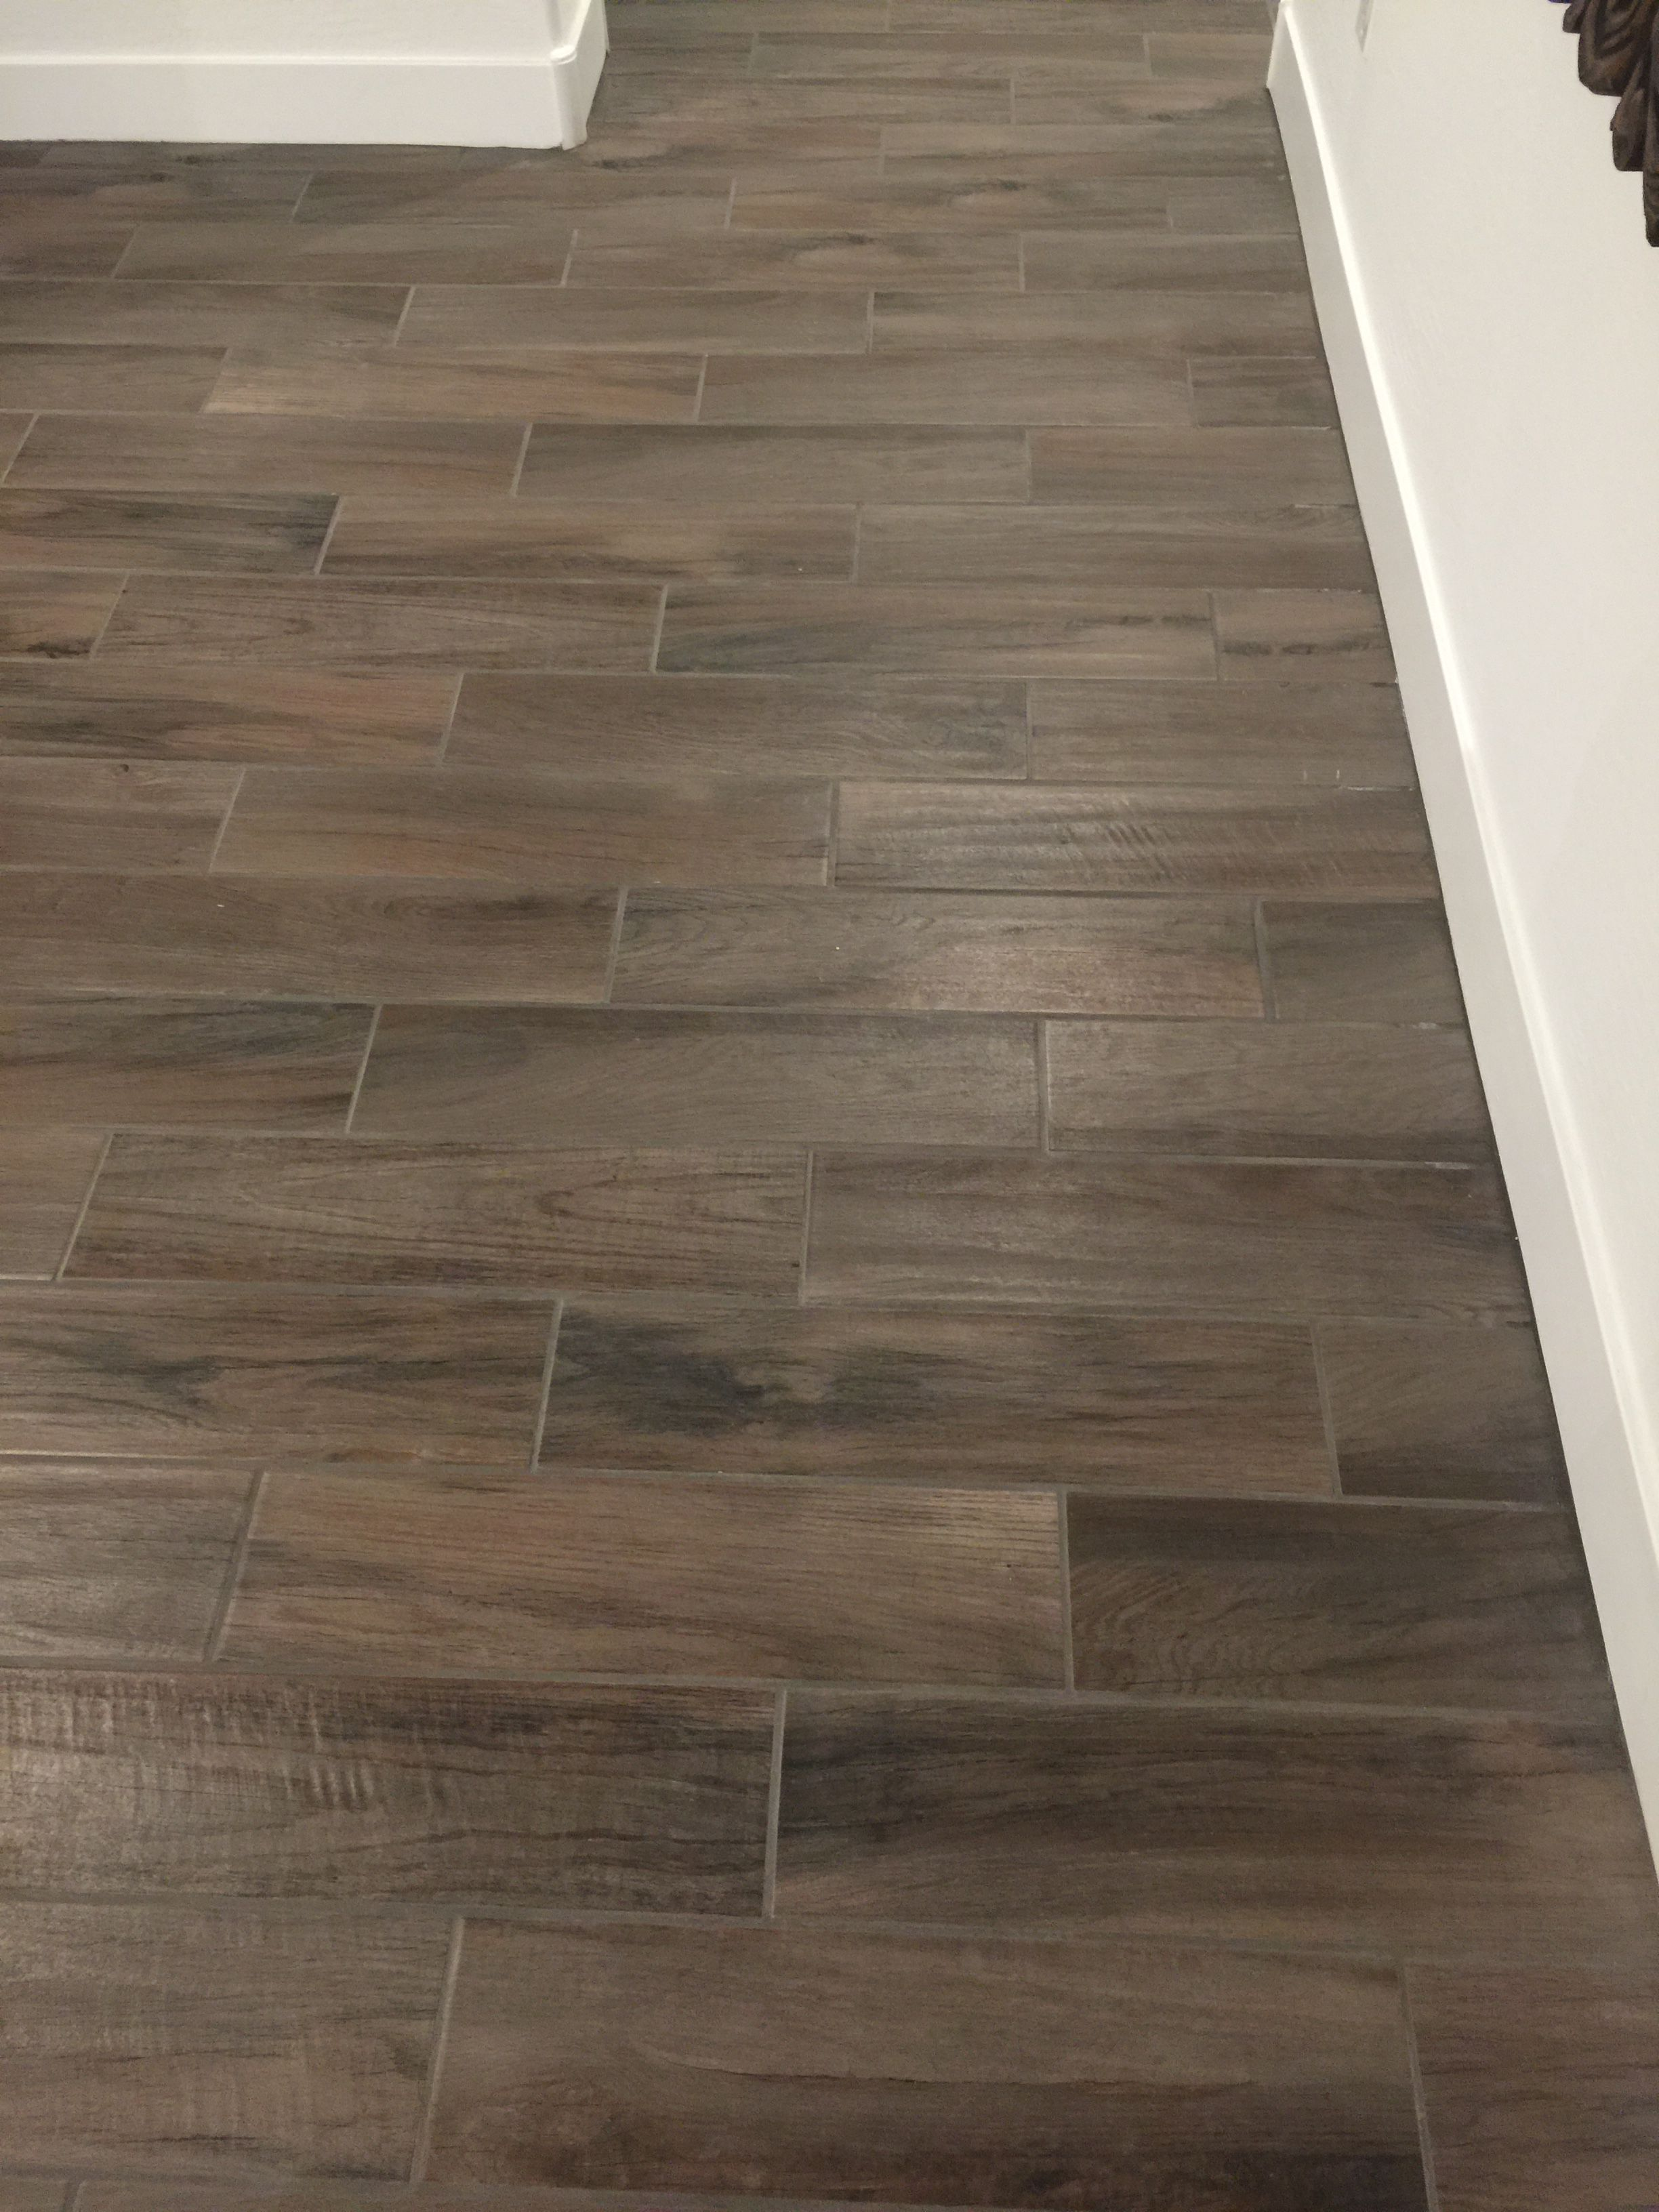 Marazzi Norwood Chestnut Tile  Flooring in 2019  Marazzi tile Wood look tile House design